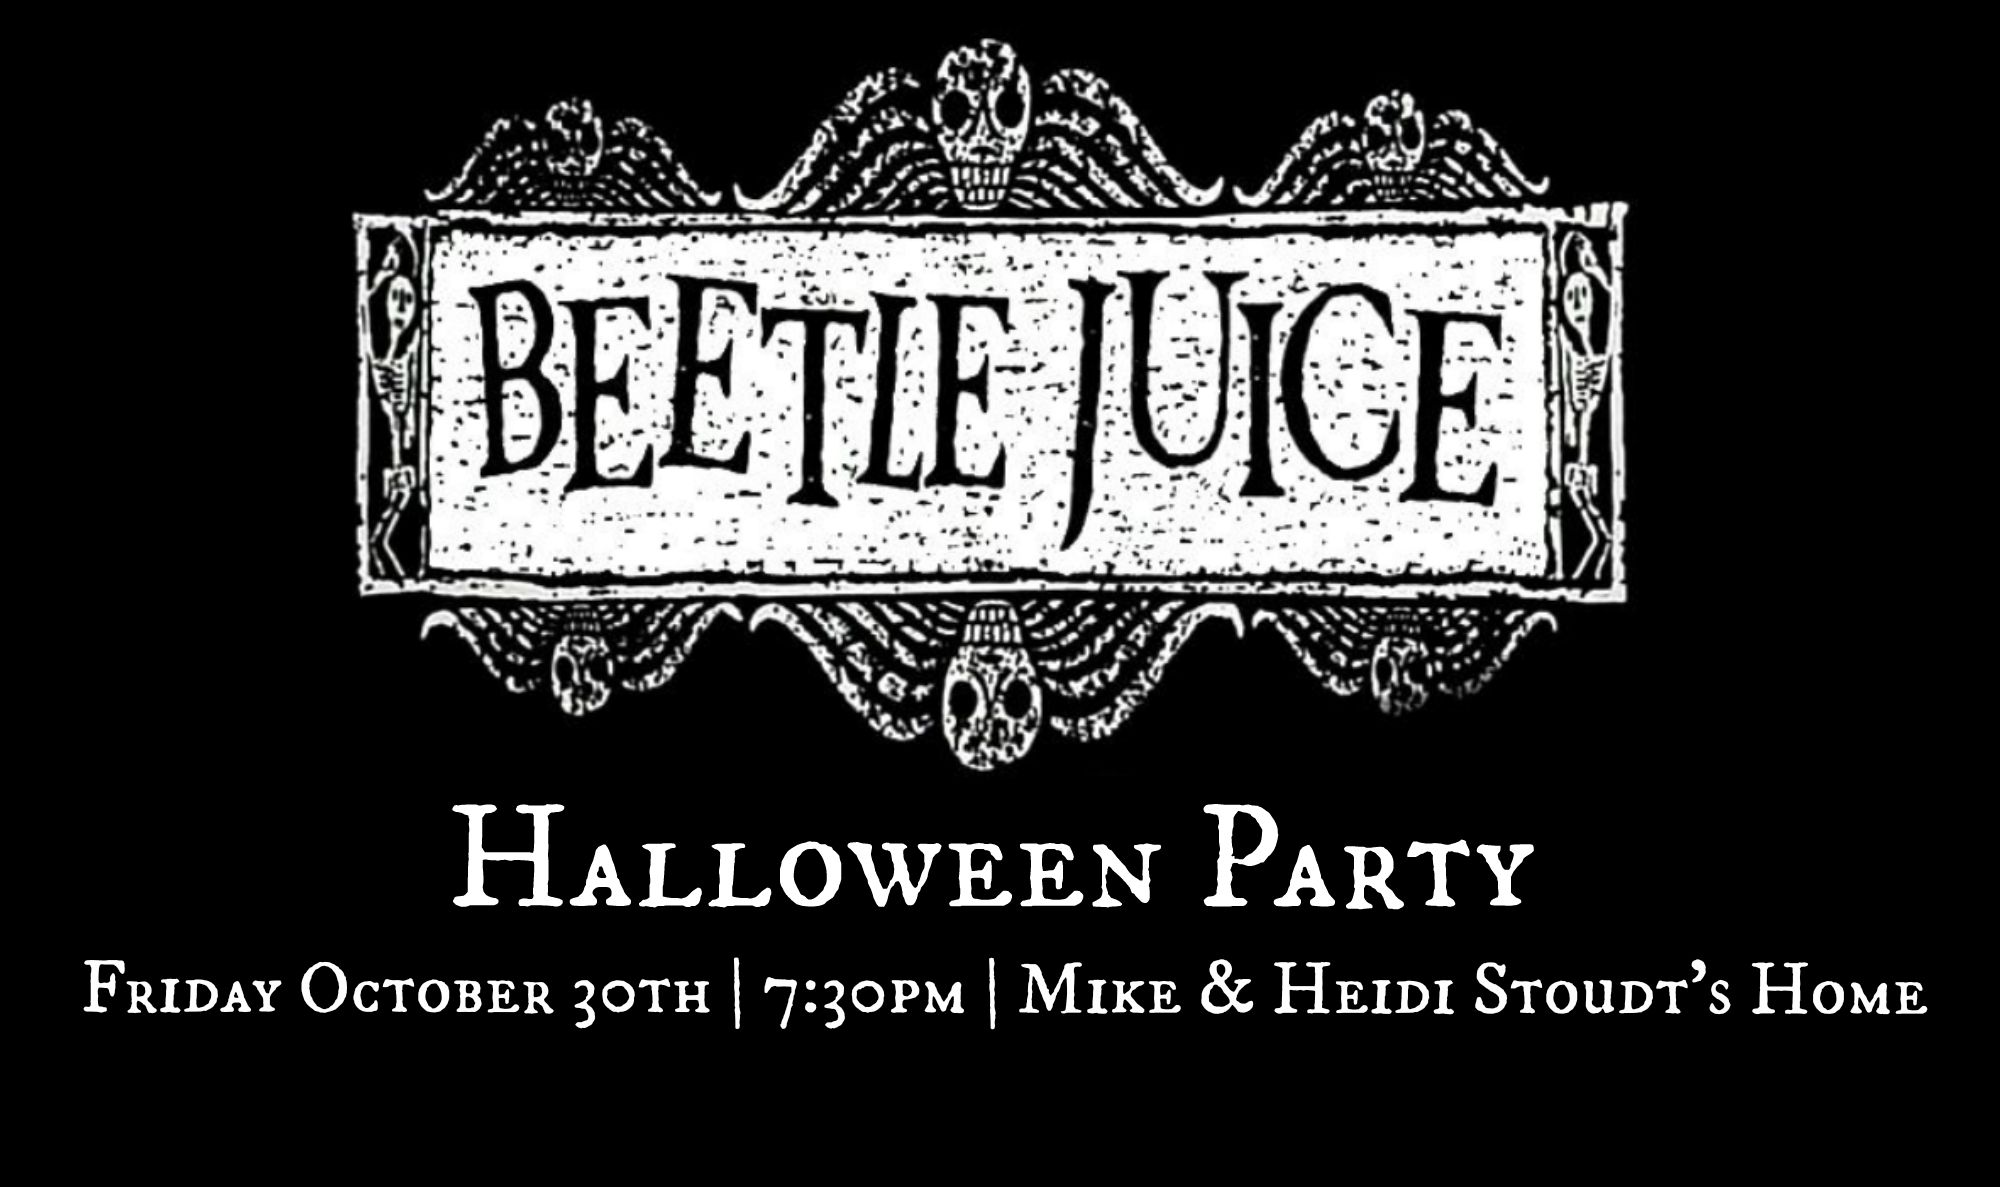 Beetlejuice Halloween Party | PartiesforPennies.com | Invitation Flyer